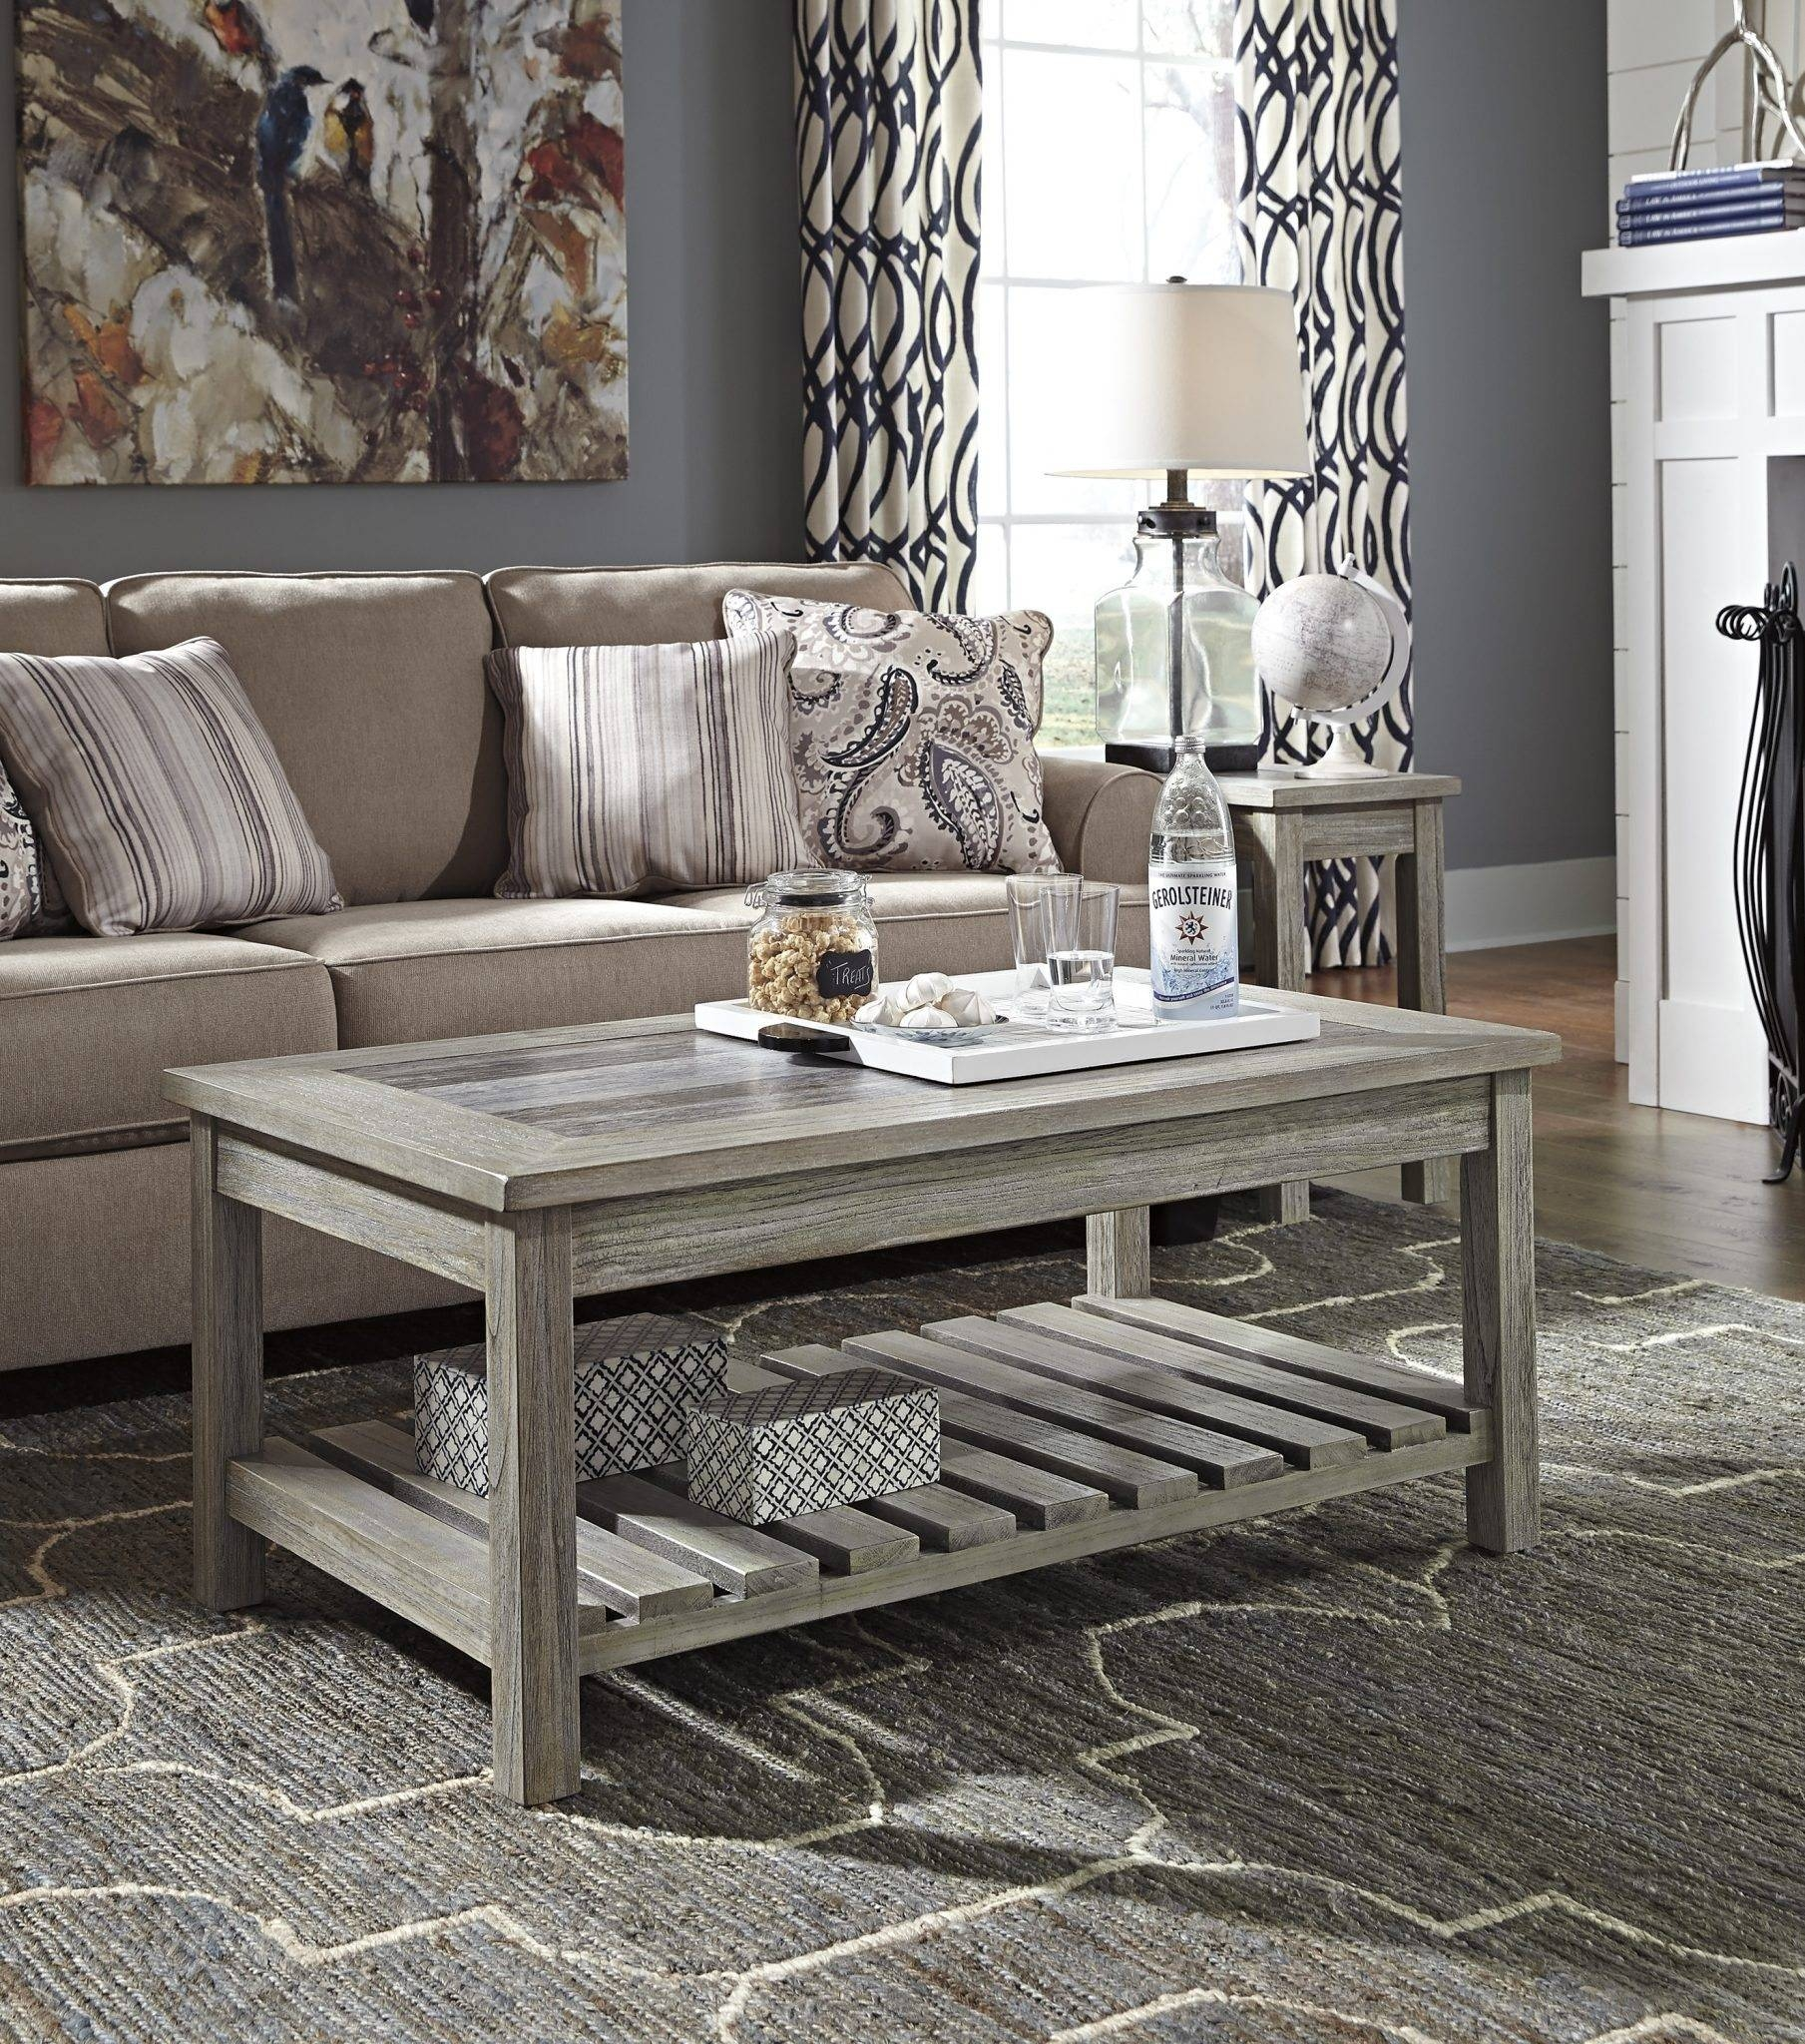 Ashley Coffee Table. Laura Ashley Garrat Other Dining Living Room intended for Grey Coffee Table Sets (Image 2 of 30)